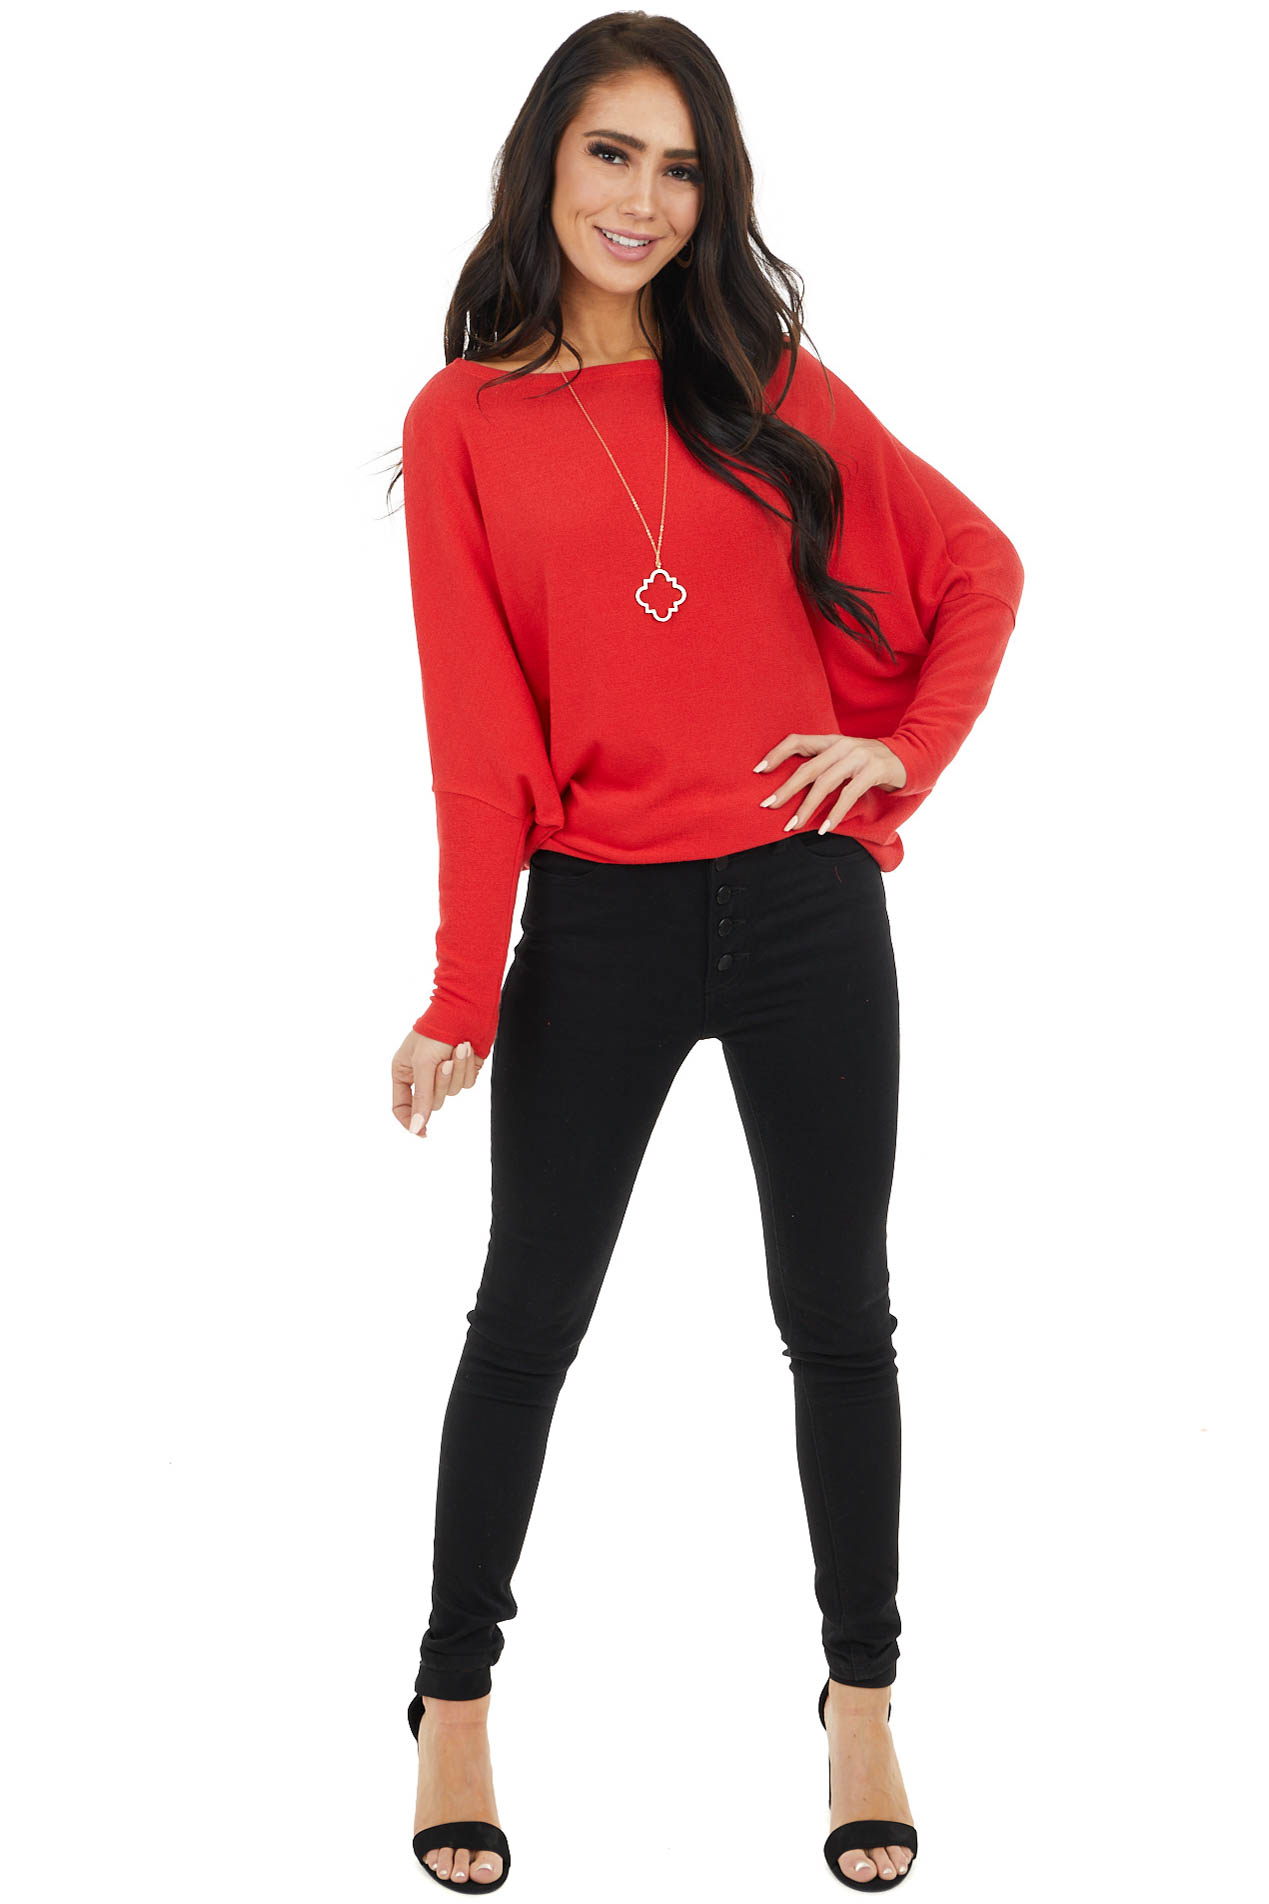 Crimson Round Neck Knit Top with Long Dolman Sleeves